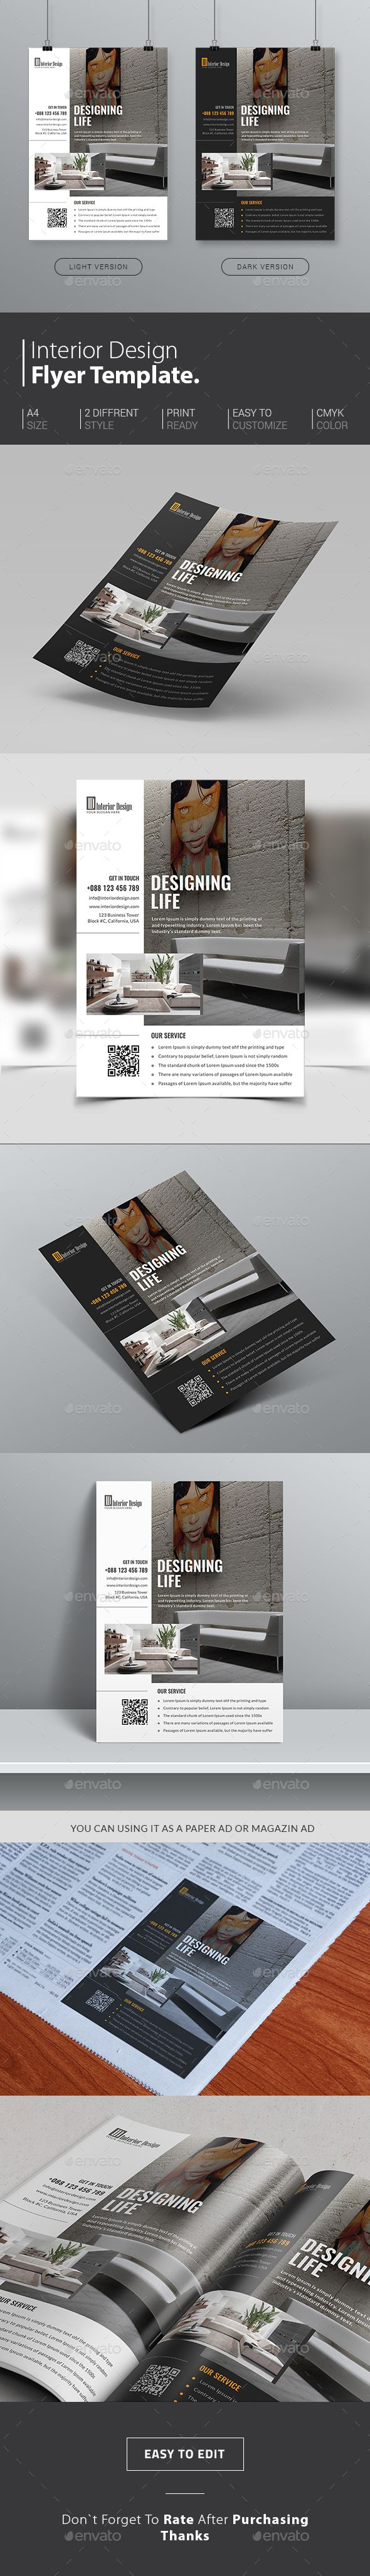 Leaflet design ad layout interior presentation website also best brochure images advertising brochures graph rh pinterest